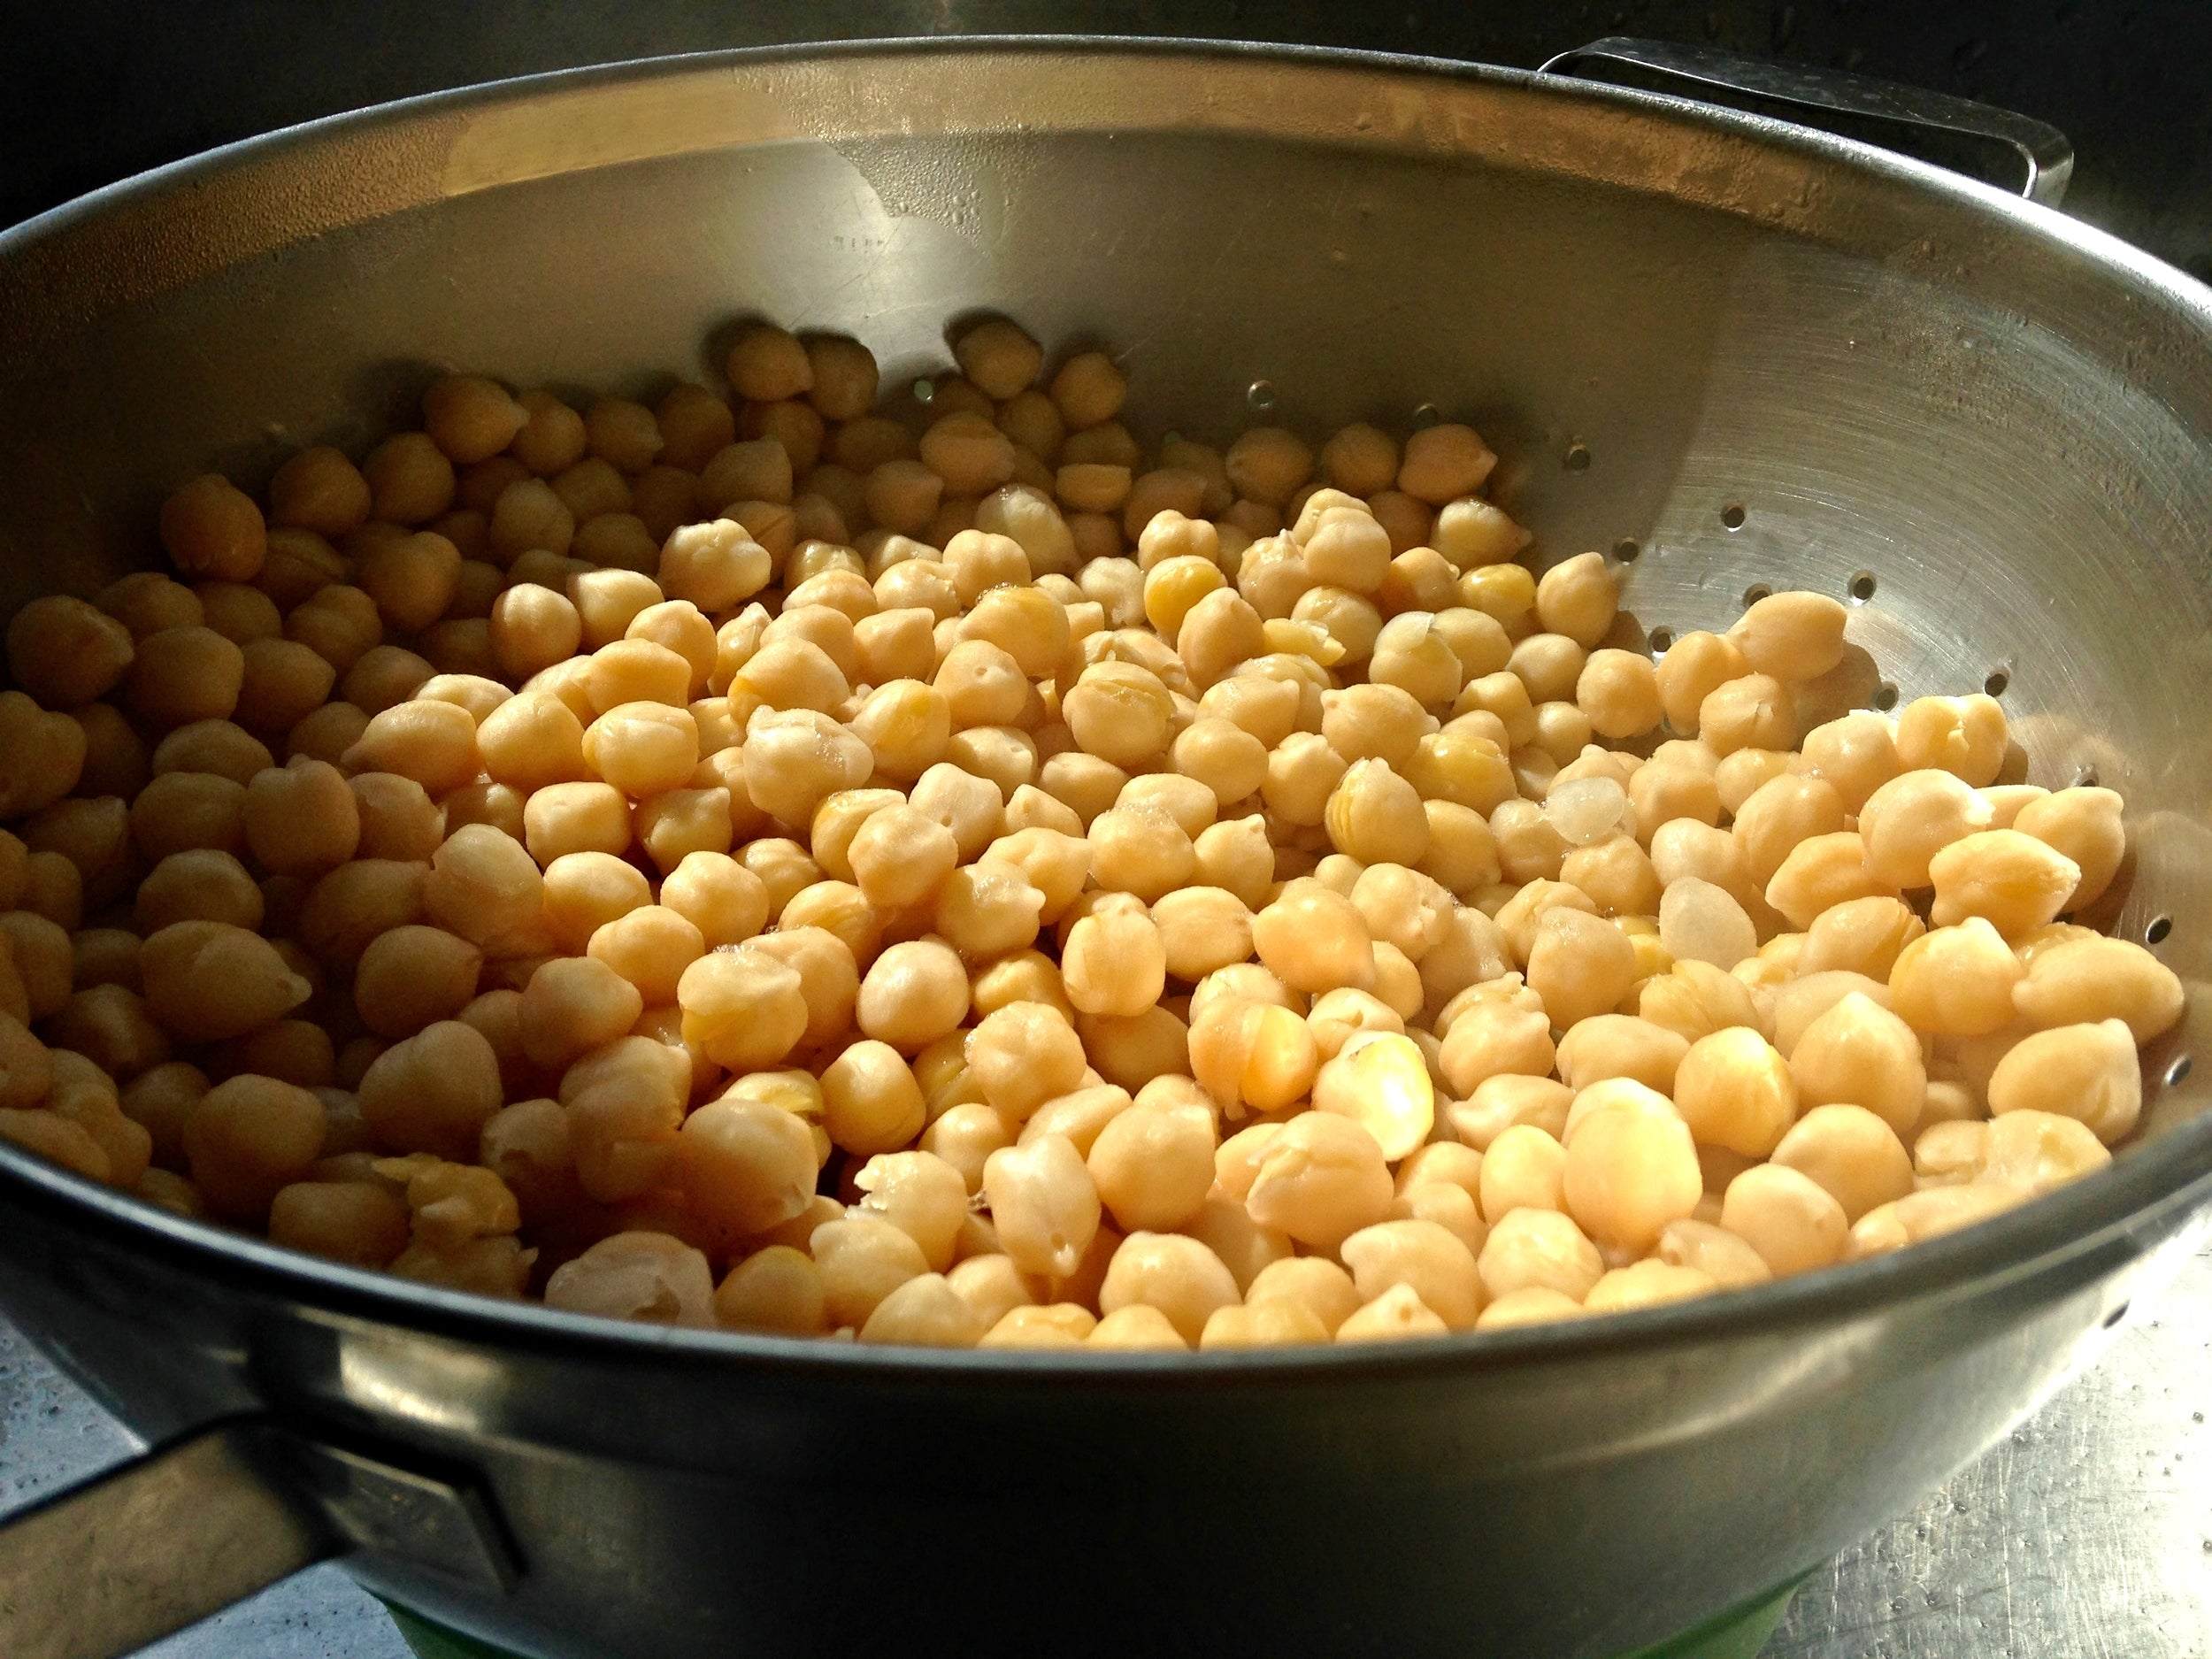 Cooked chickpeas. You can replace these with cooked, canned chickpeas